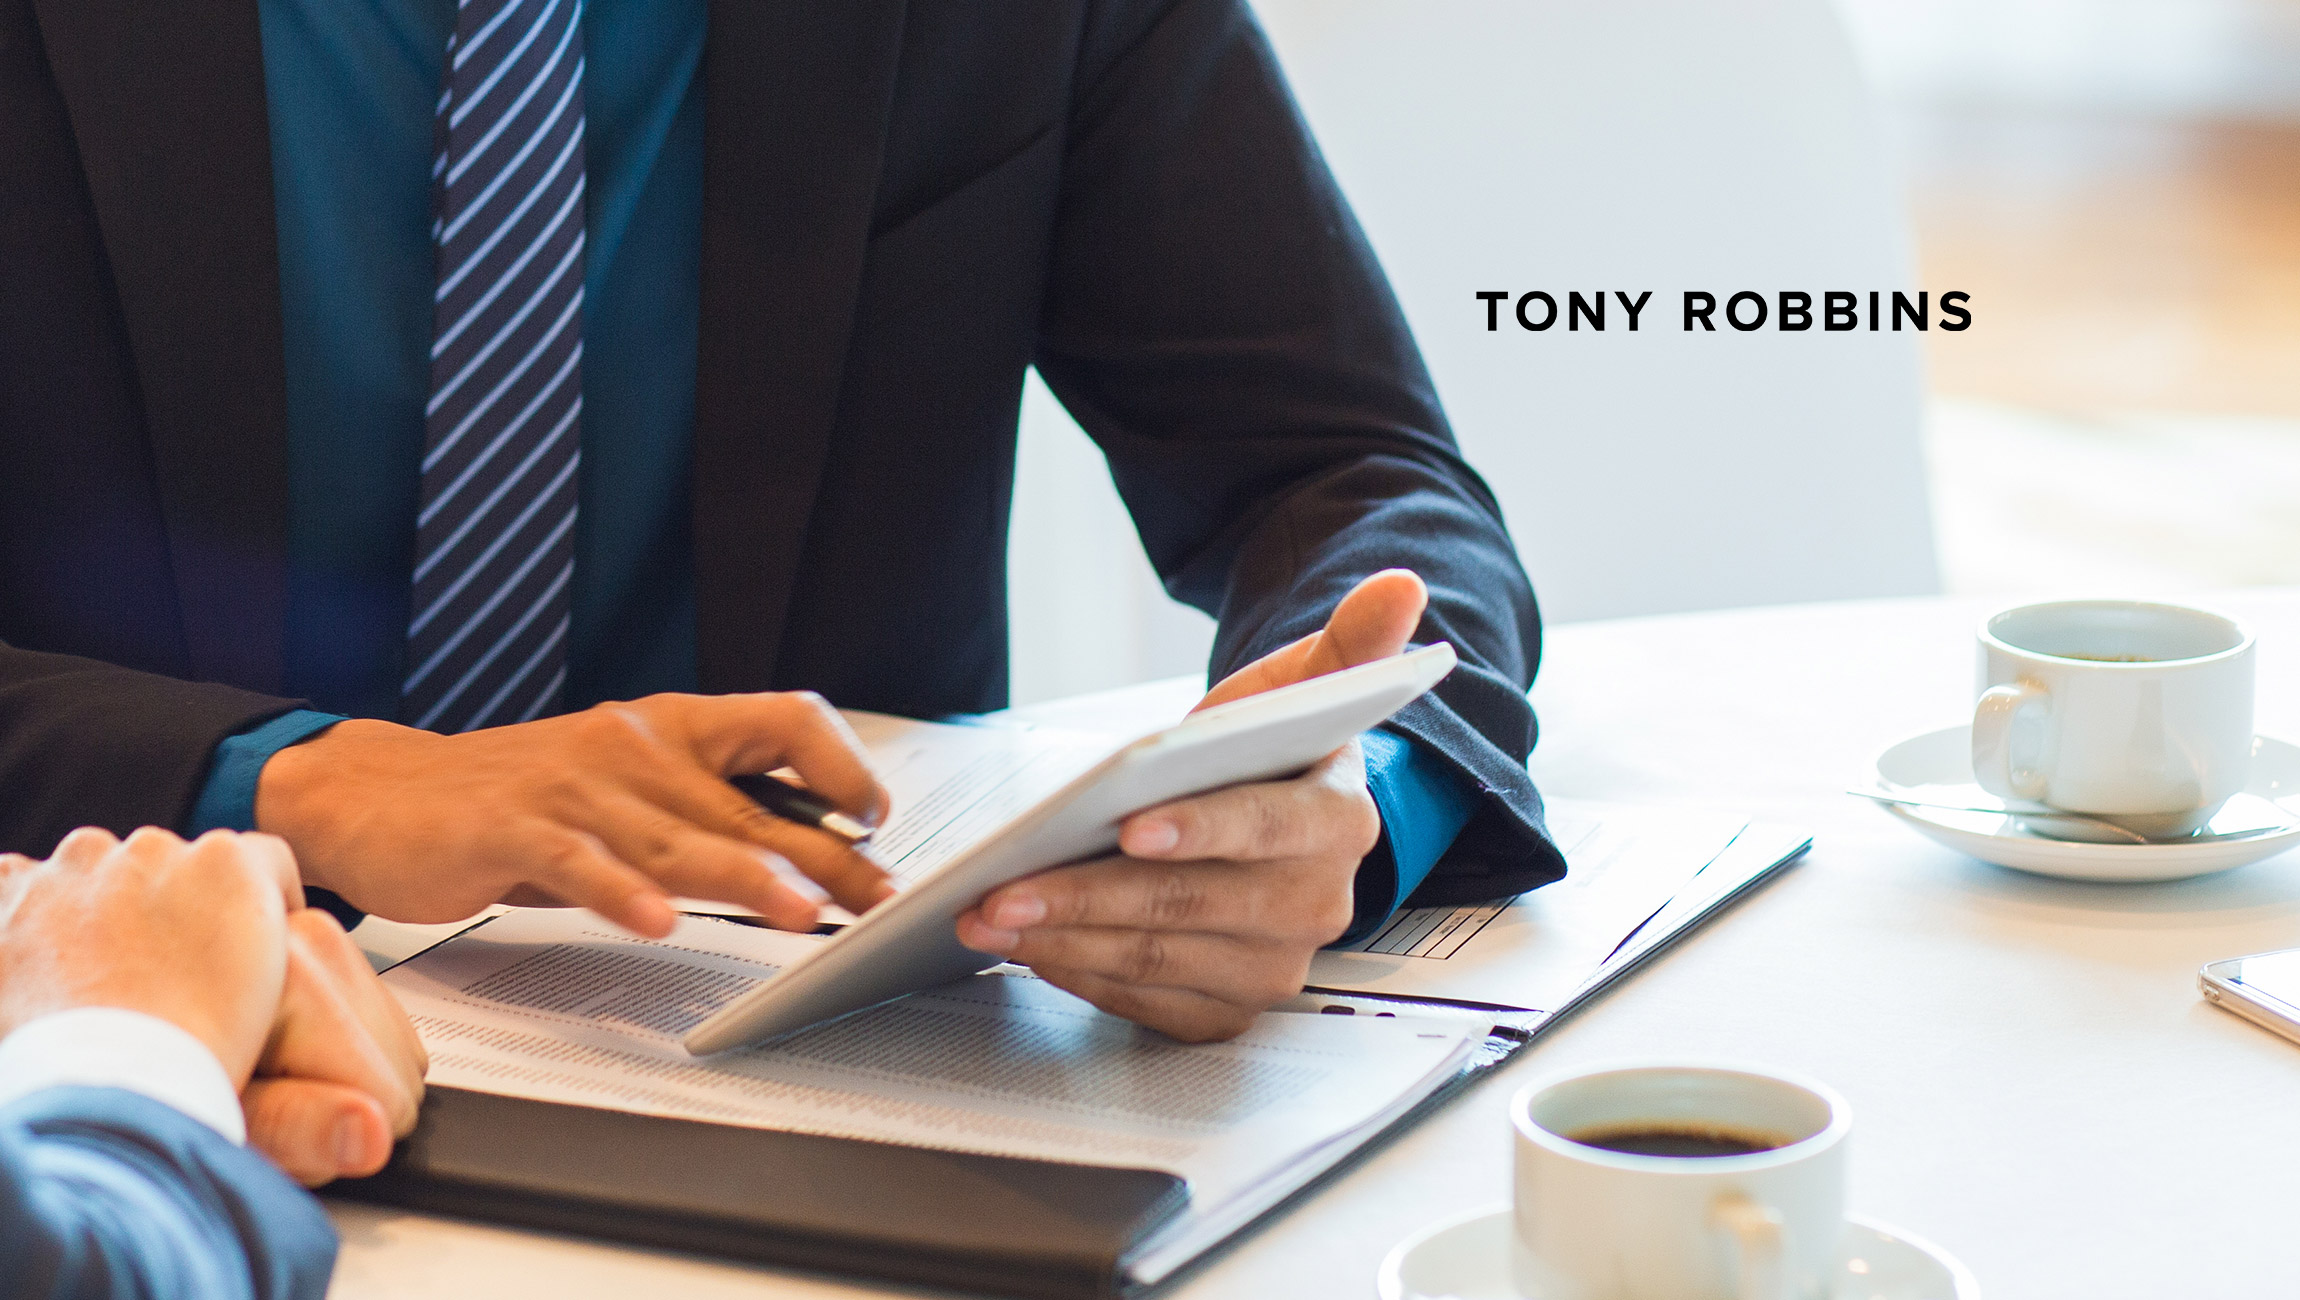 Tony Robbins and Corporate Visions to Offer New Program for Entrepreneurs and Small Business Owners